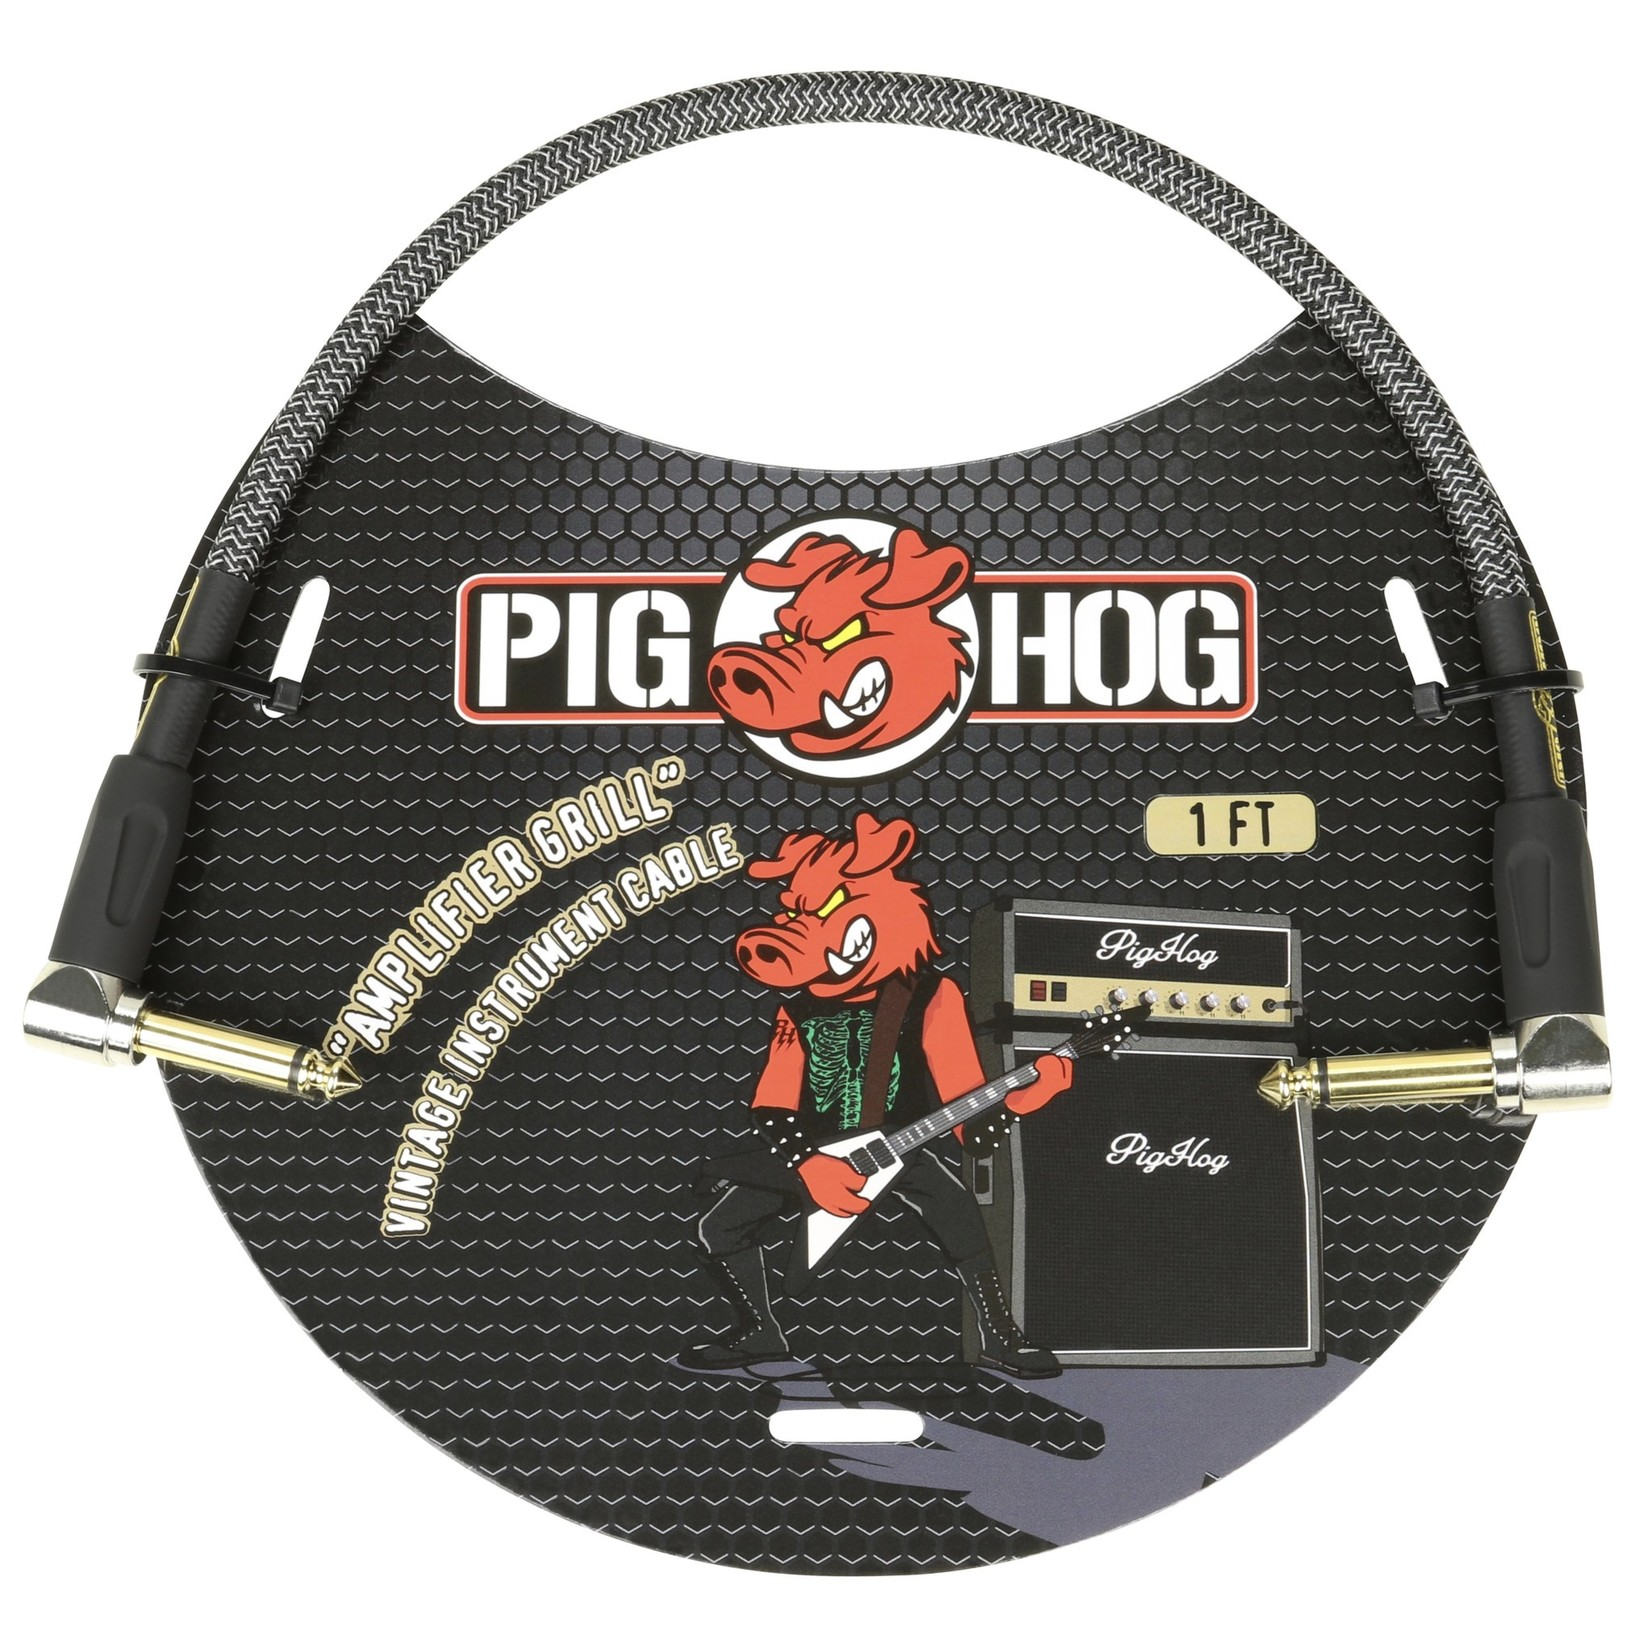 Pig Hog Pig Hog Vintage Woven Patch Cable, 1-Foot, 7mm, Right-Angle Connectors, Amplifier Grill (PCH1AGR)